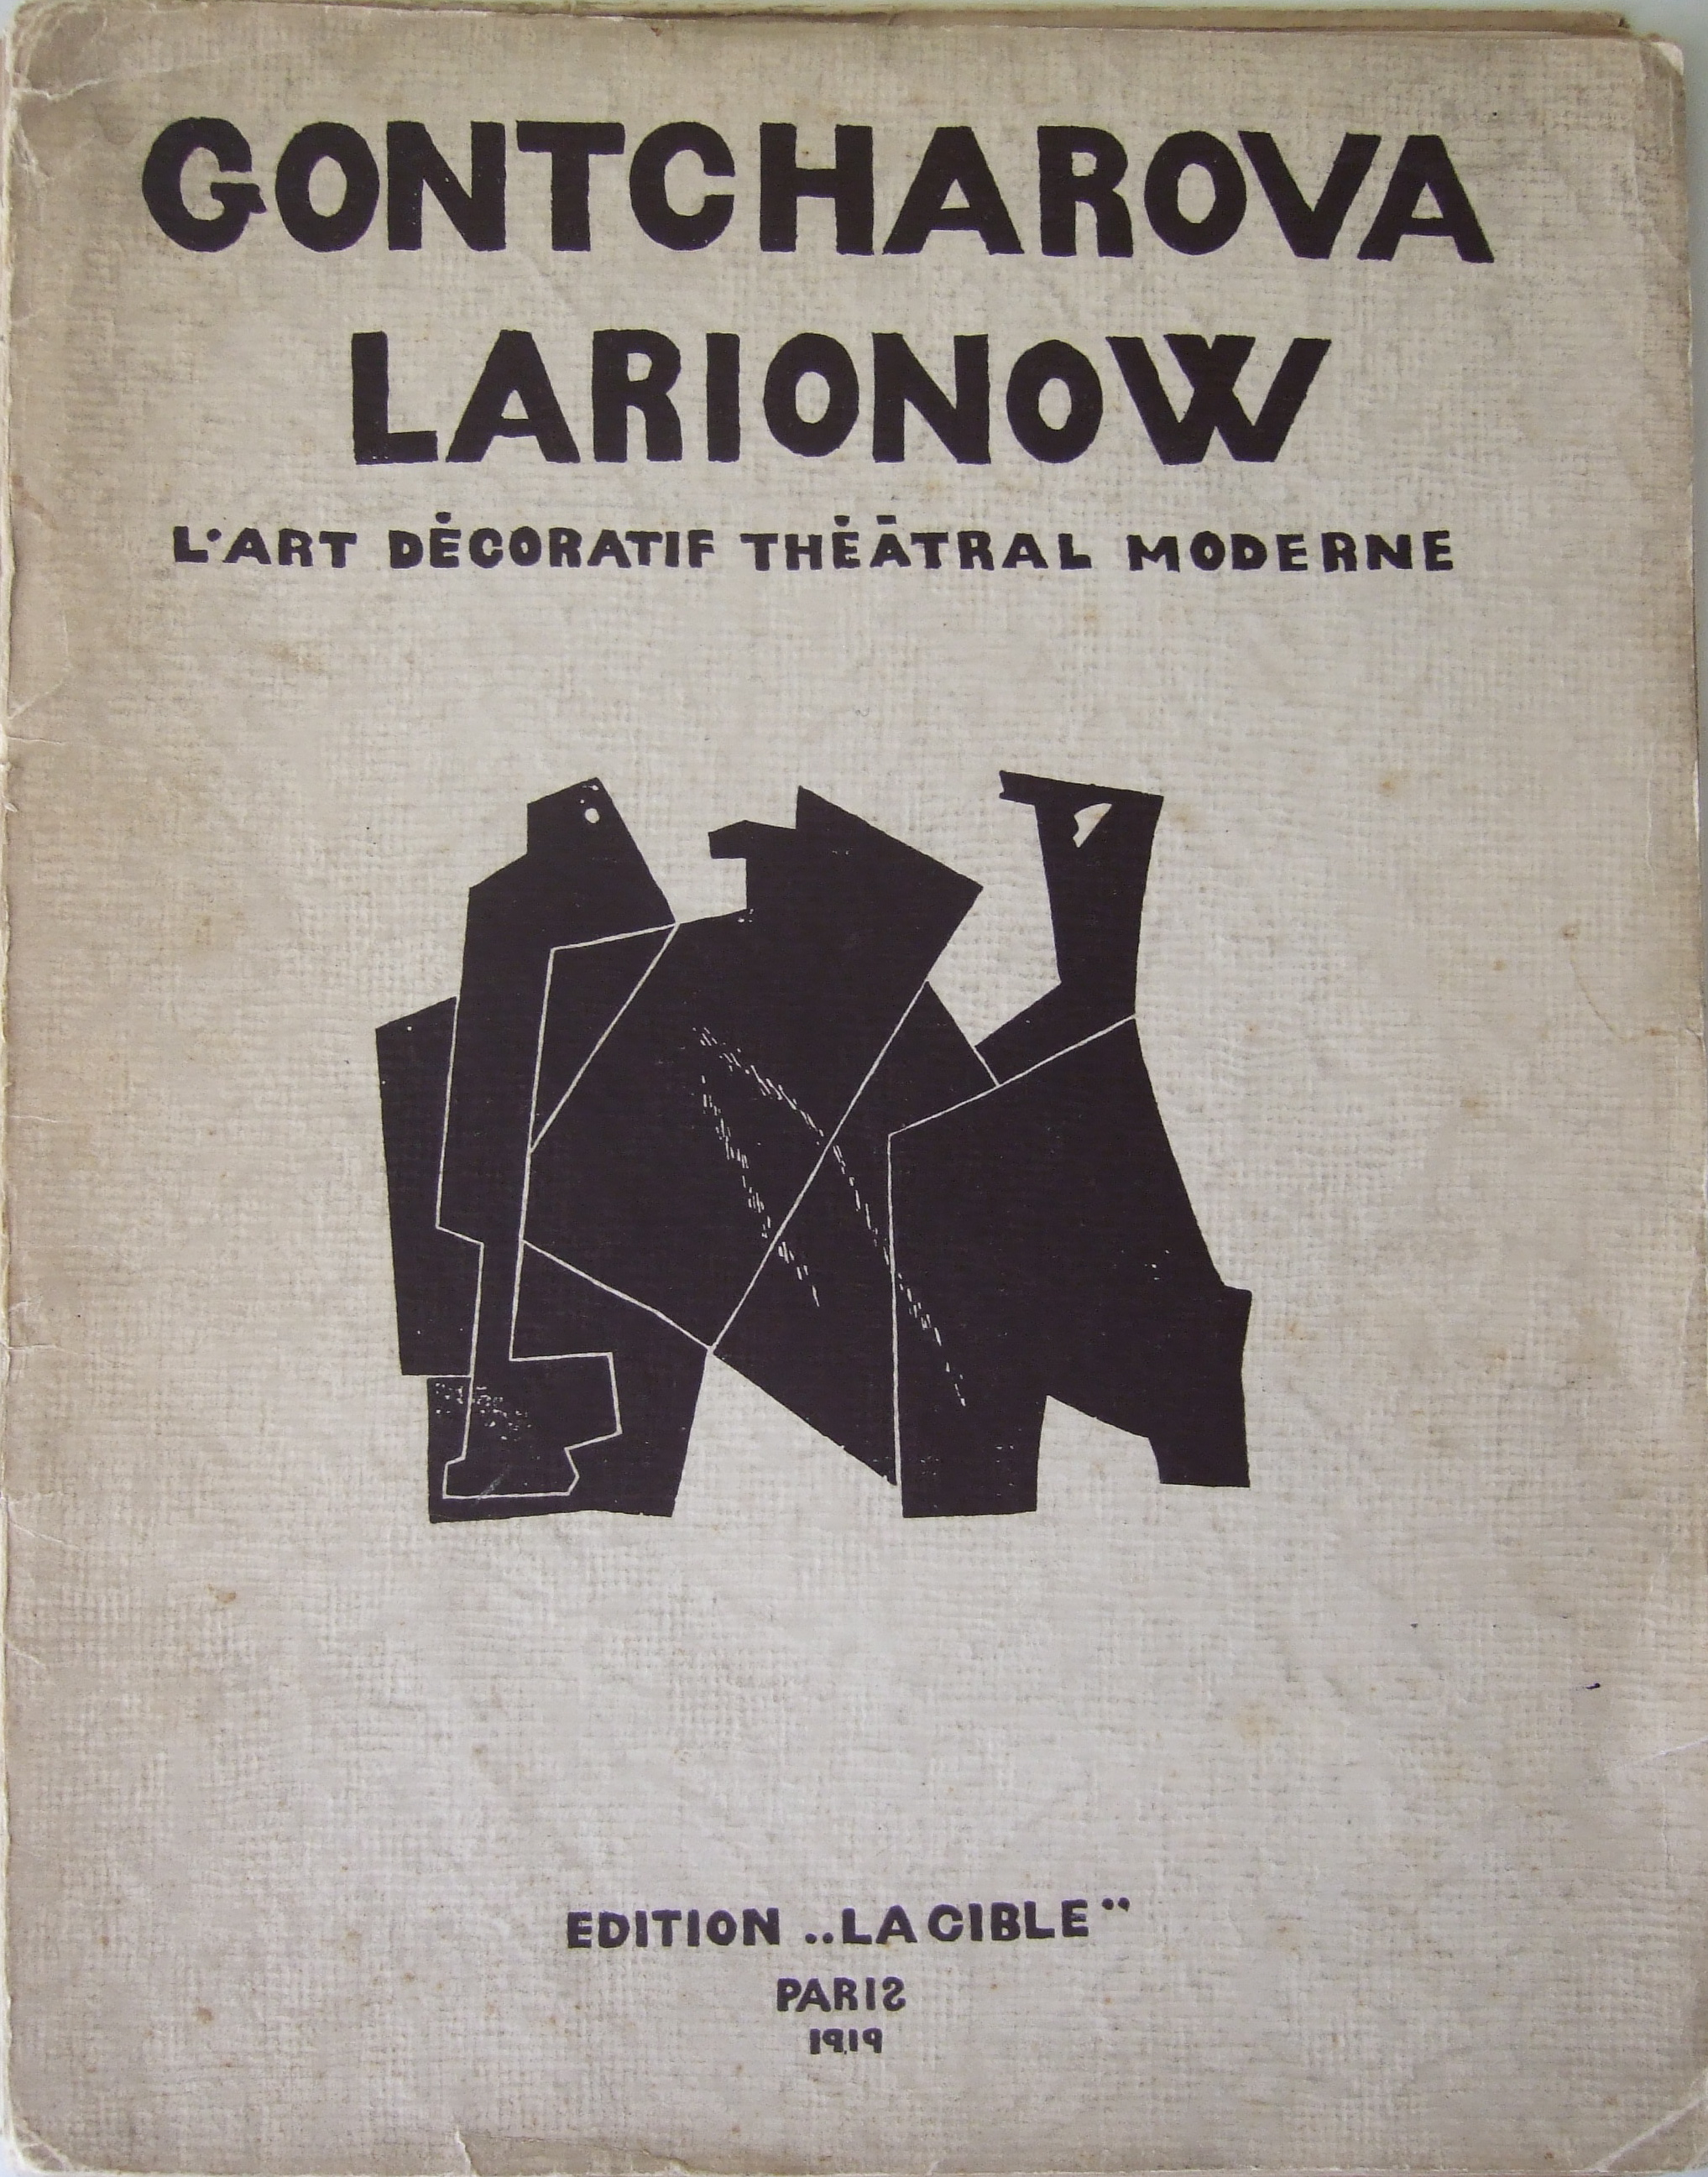 Gontcharova Larionow. Paris 1919